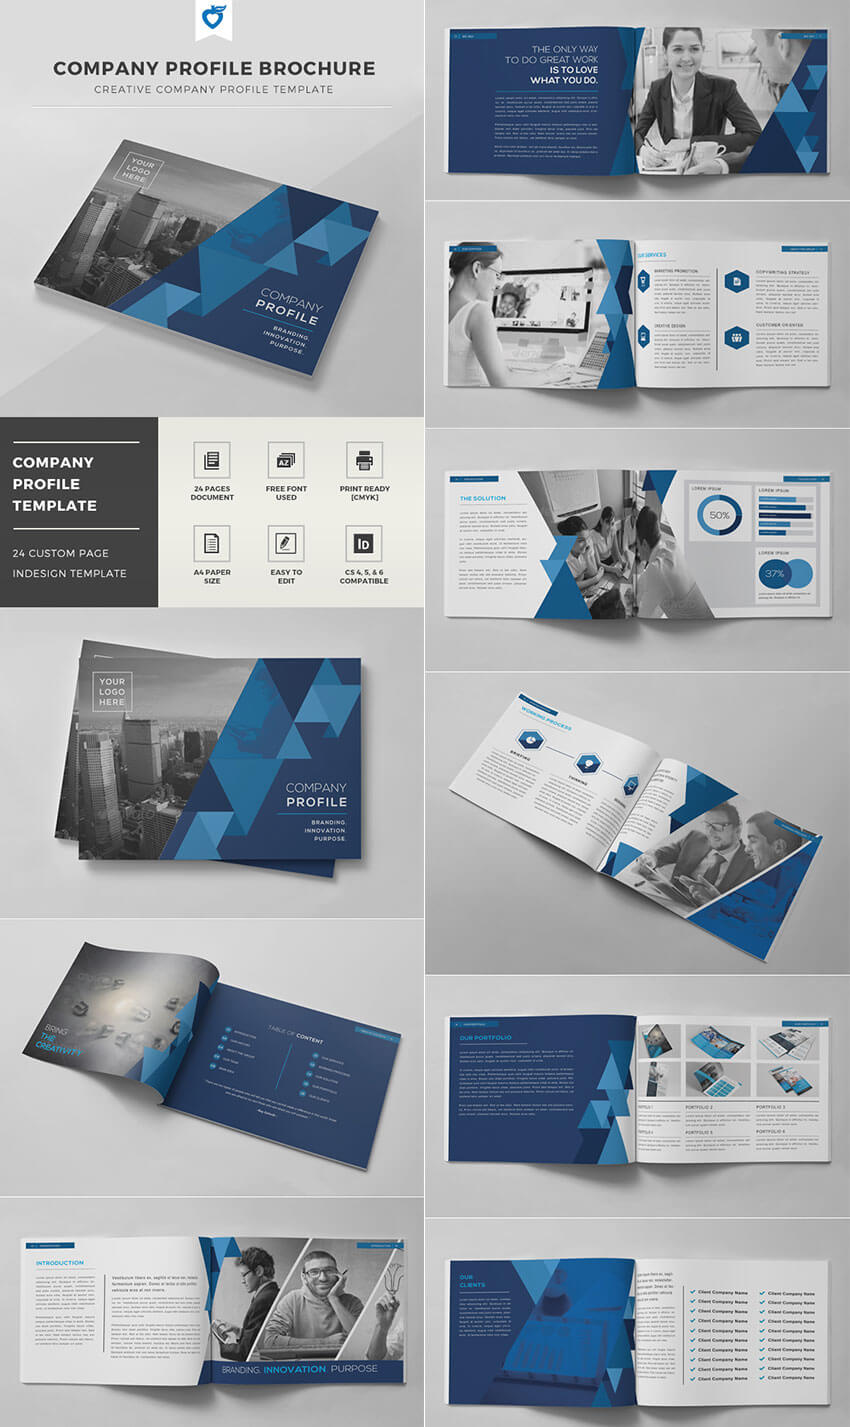 30 Best Indesign Brochure Templates – Creative Business Inside Good Brochure Templates